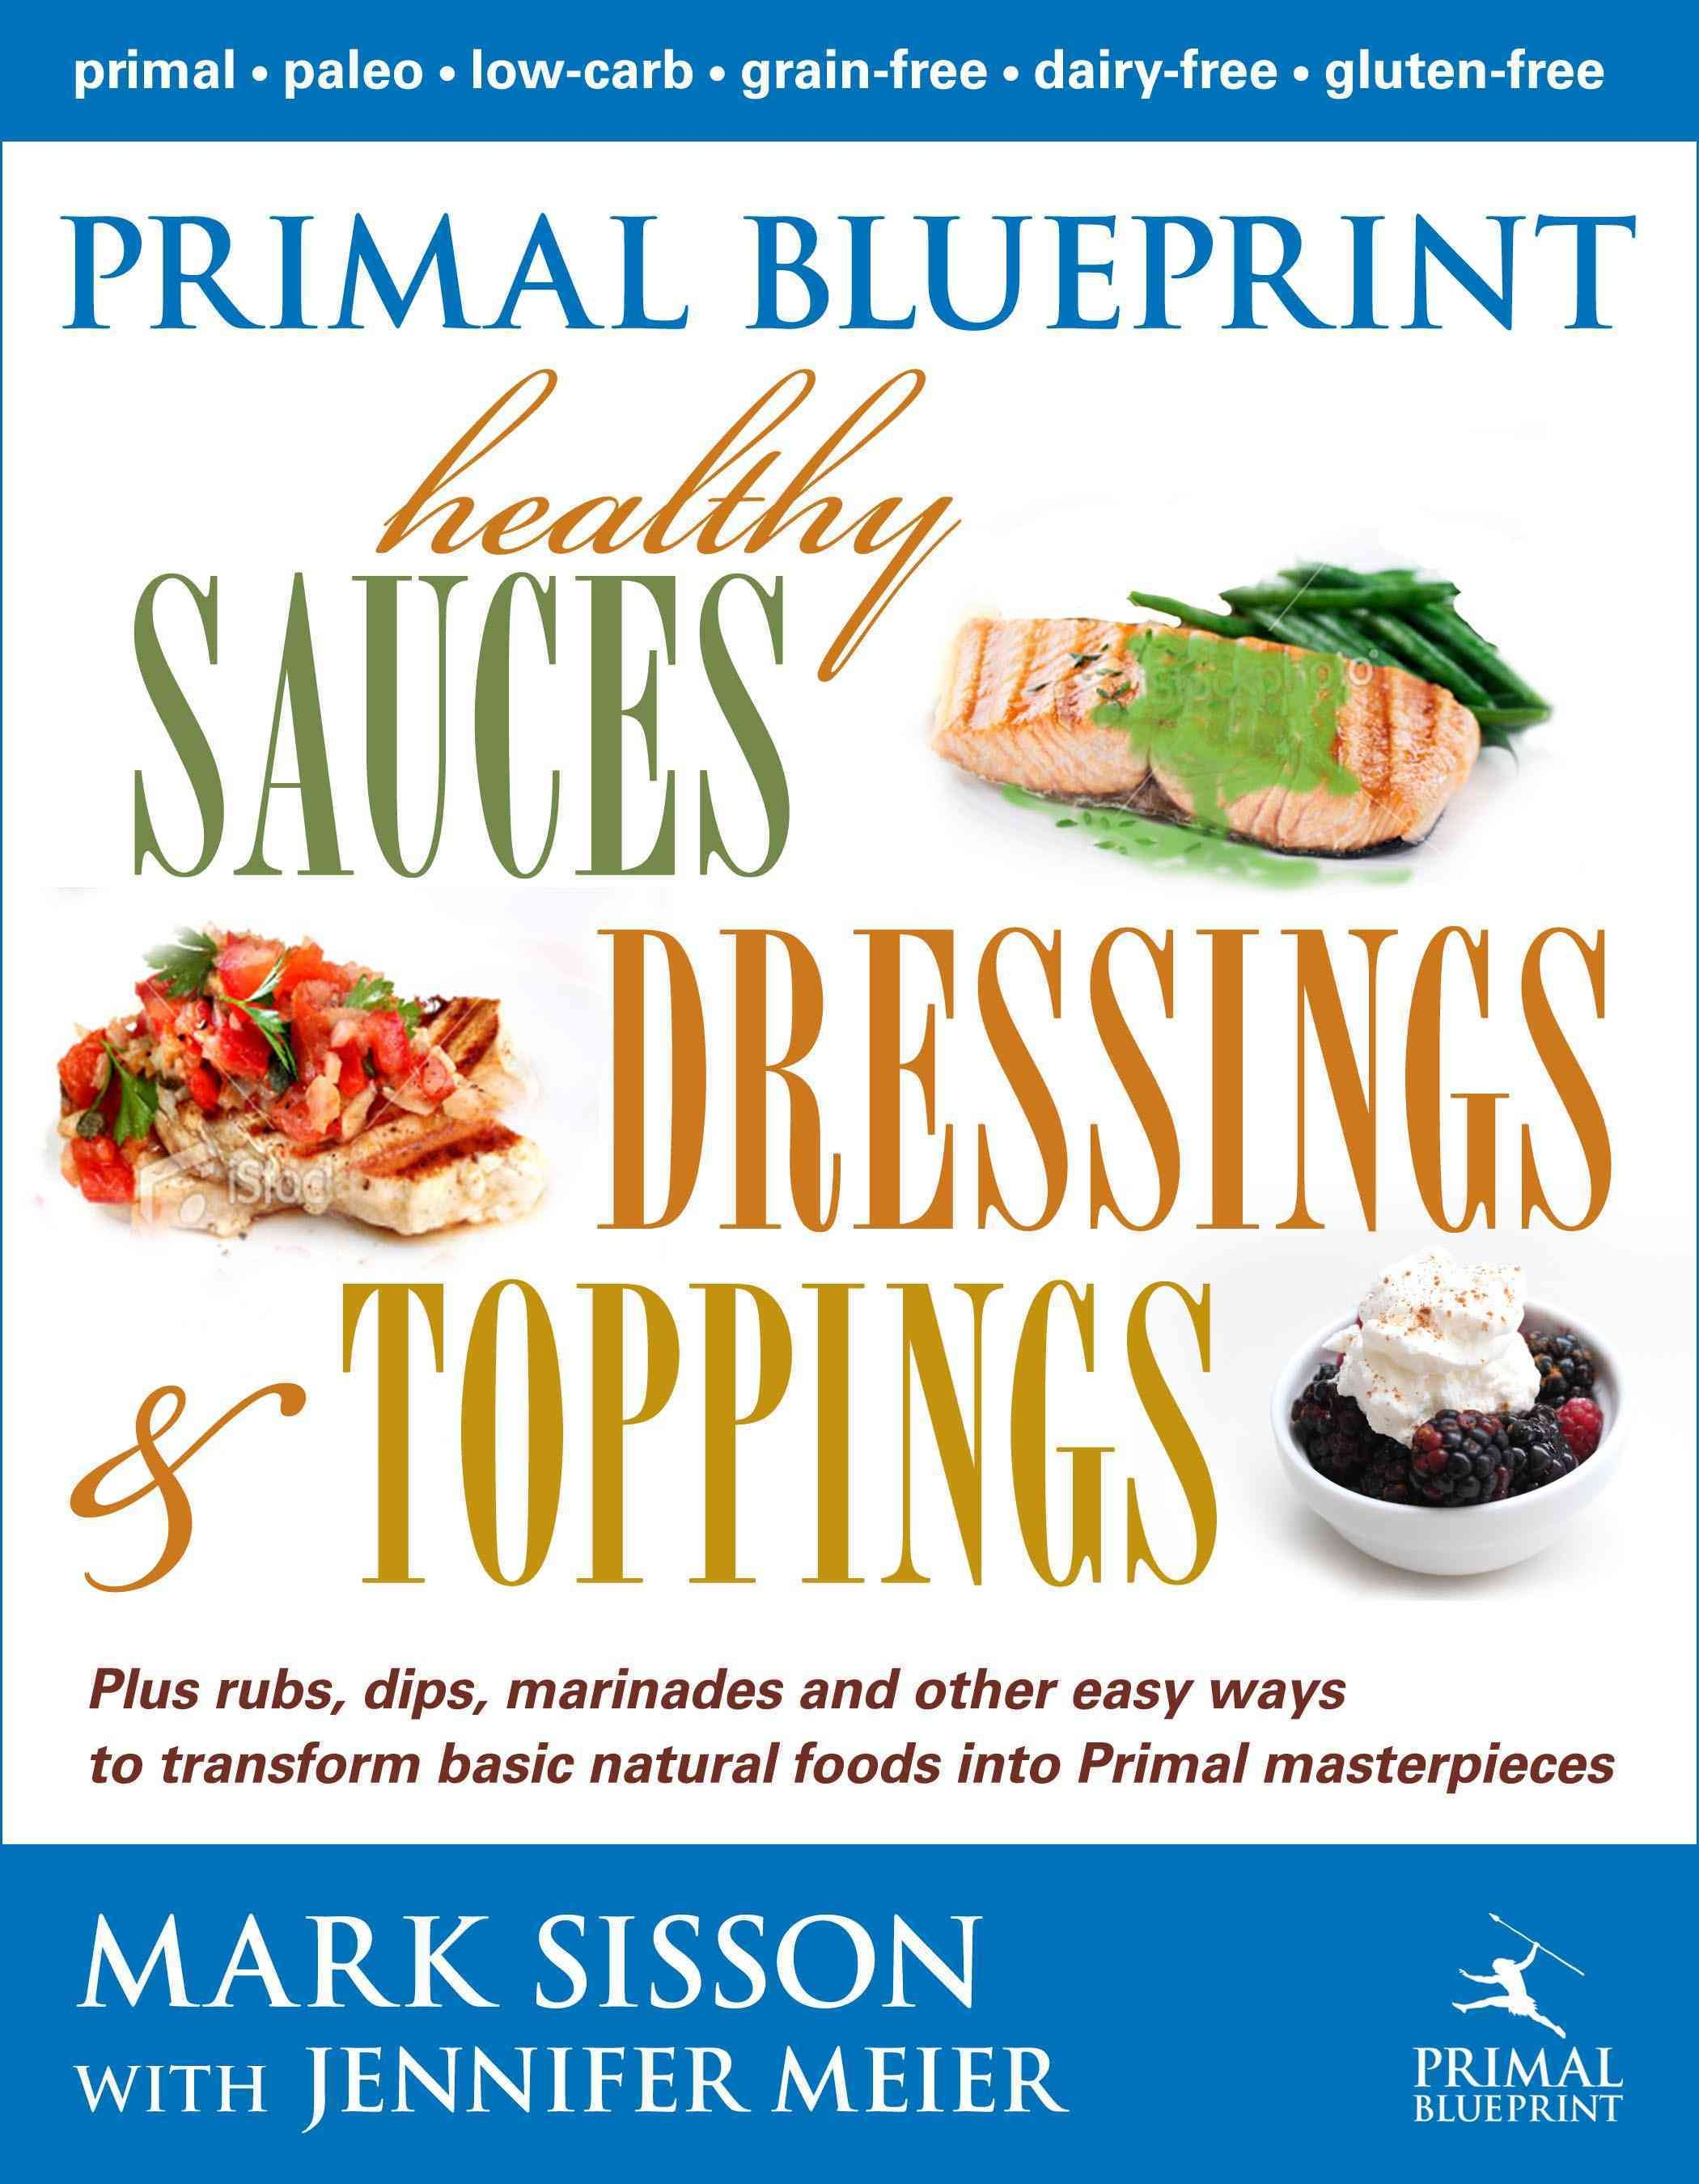 Primal blueprint healthy sauces dressings toppings healthy primal blueprint healthy sauces dressings toppings malvernweather Images